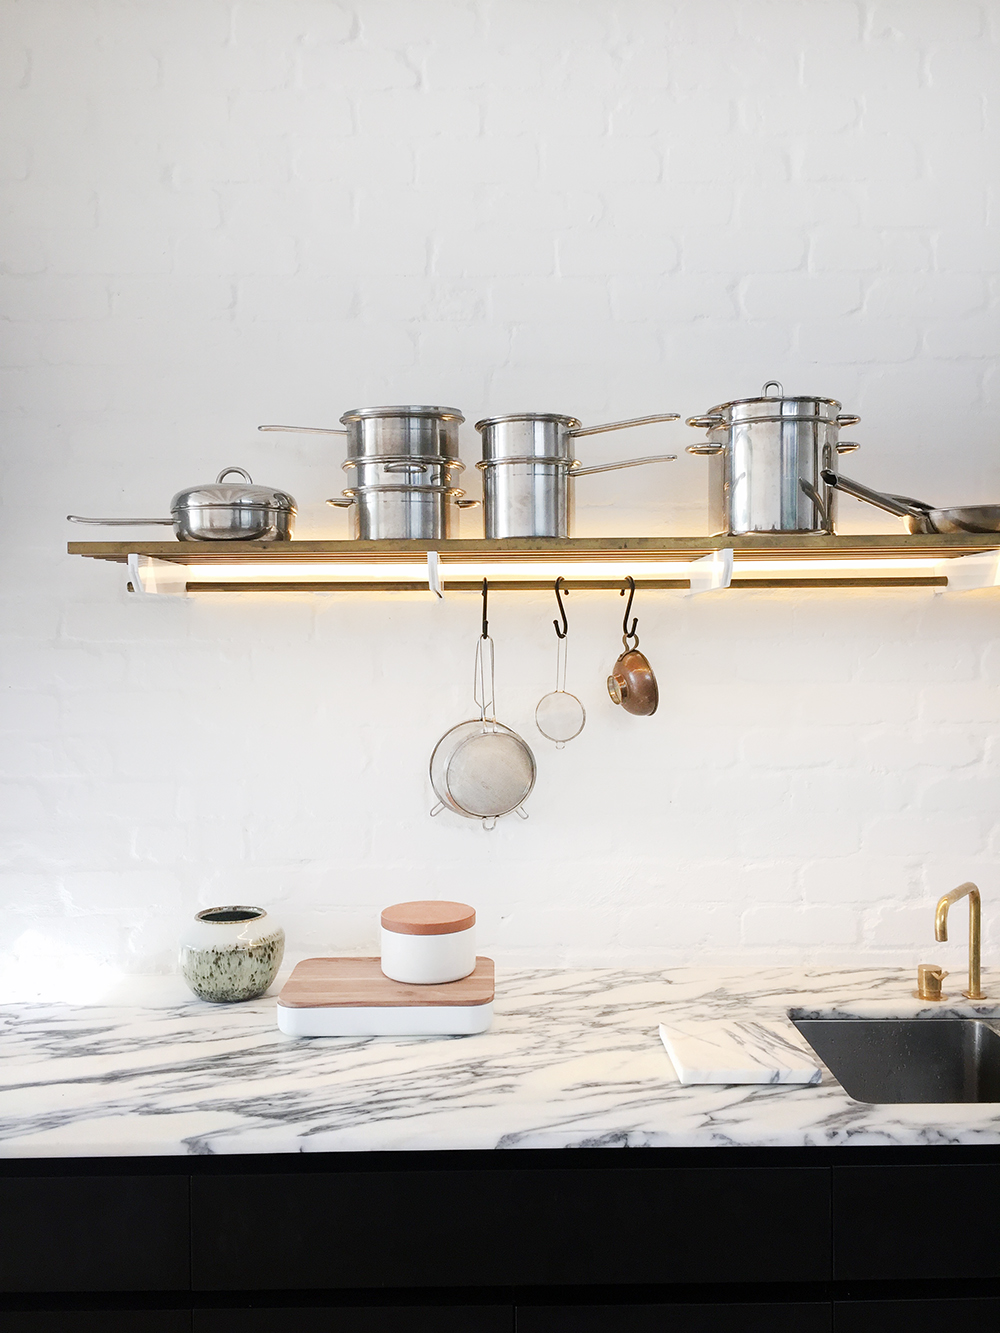 Kitchen goals. Inner city Sydney terrace house.